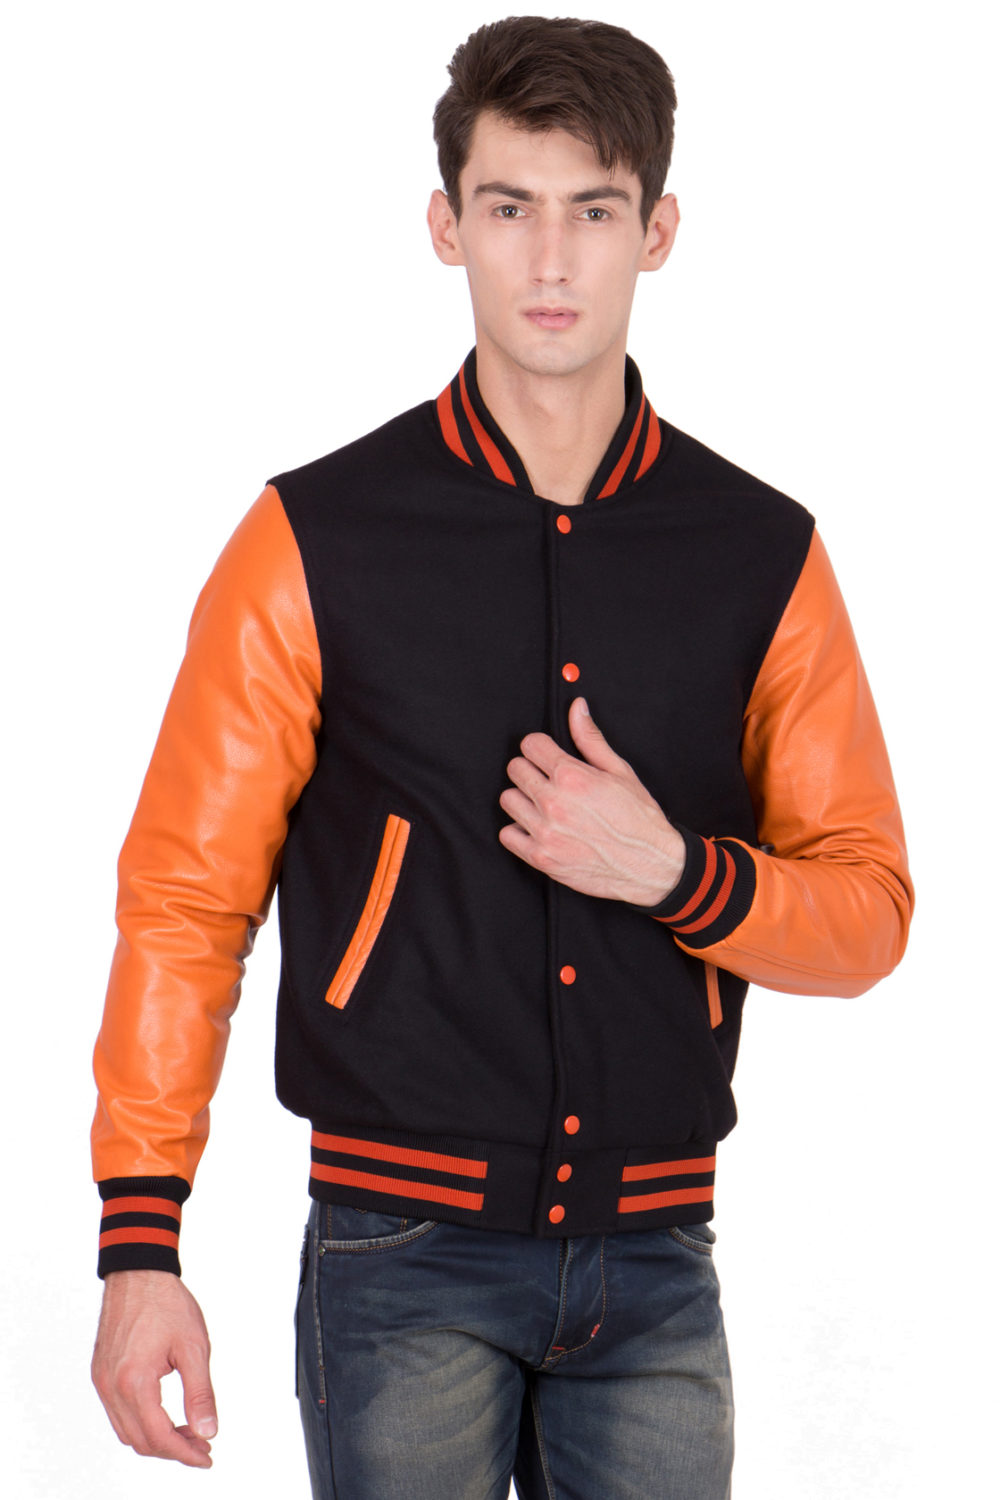 BURNT ORANGE LEATHER SLEEVES & BLACK WOOL BODY VARSITY JACKET-MEN